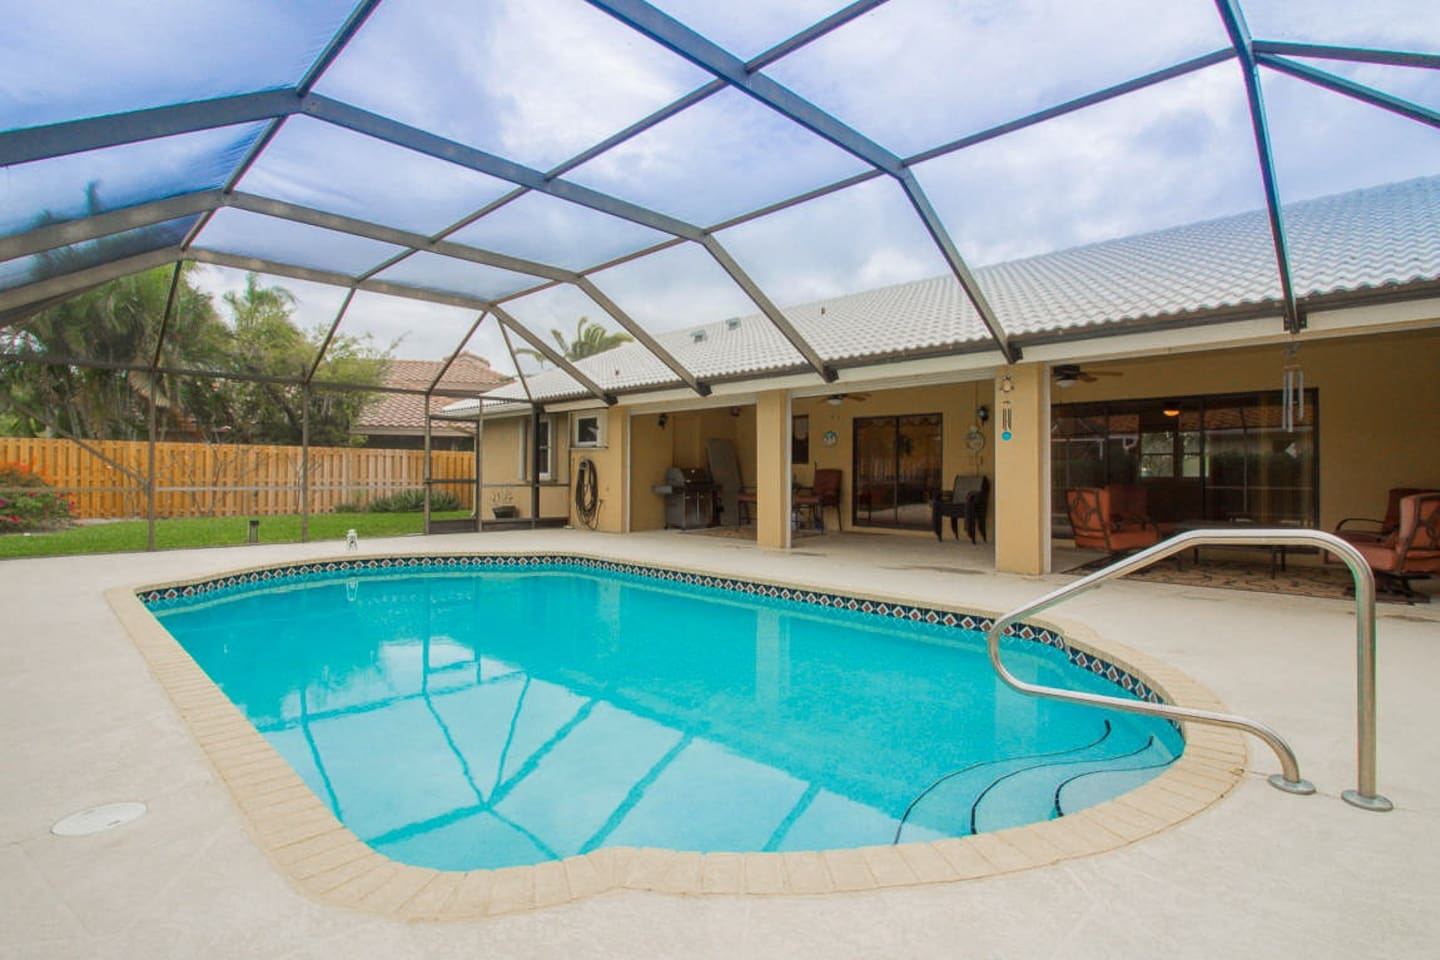 Relax by our enclosed pool or grill dinner on the patio.  NOTE:  There is a child safety fence (removable) that surrounds the pool now - worry free enjoyment for the whole family :)